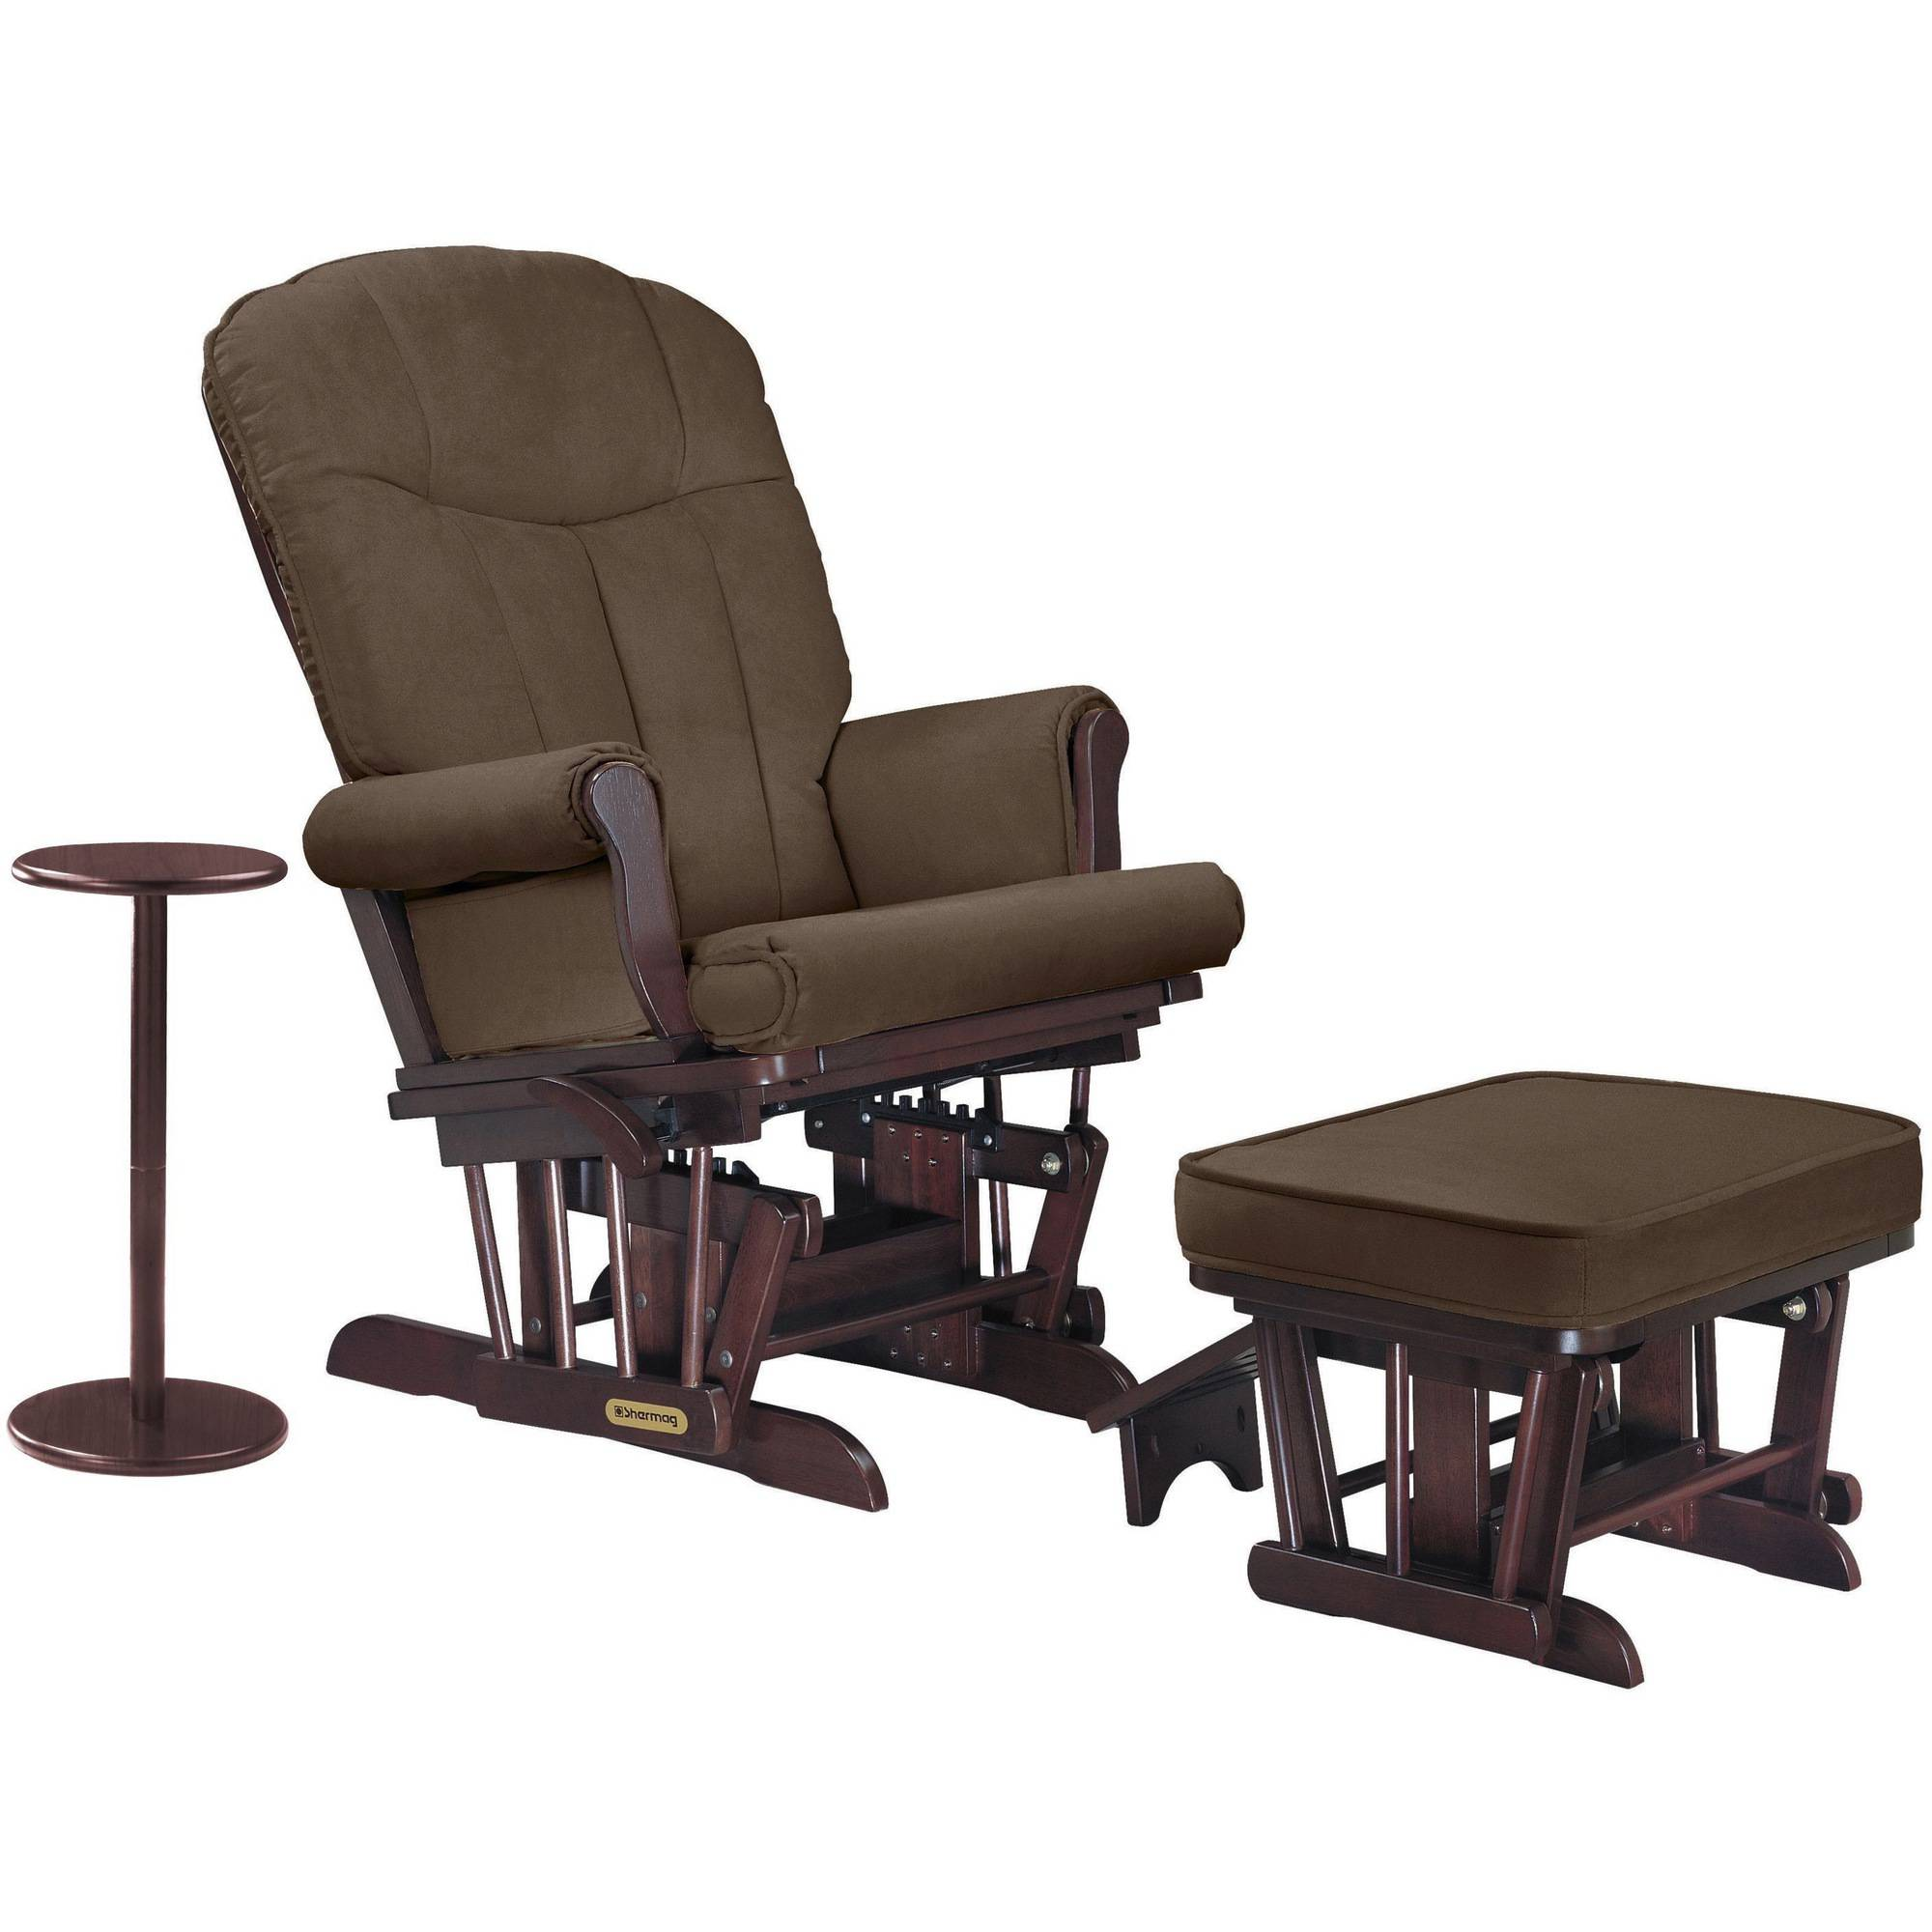 SherMag Sleigh Glider and Ottoman by Shermag